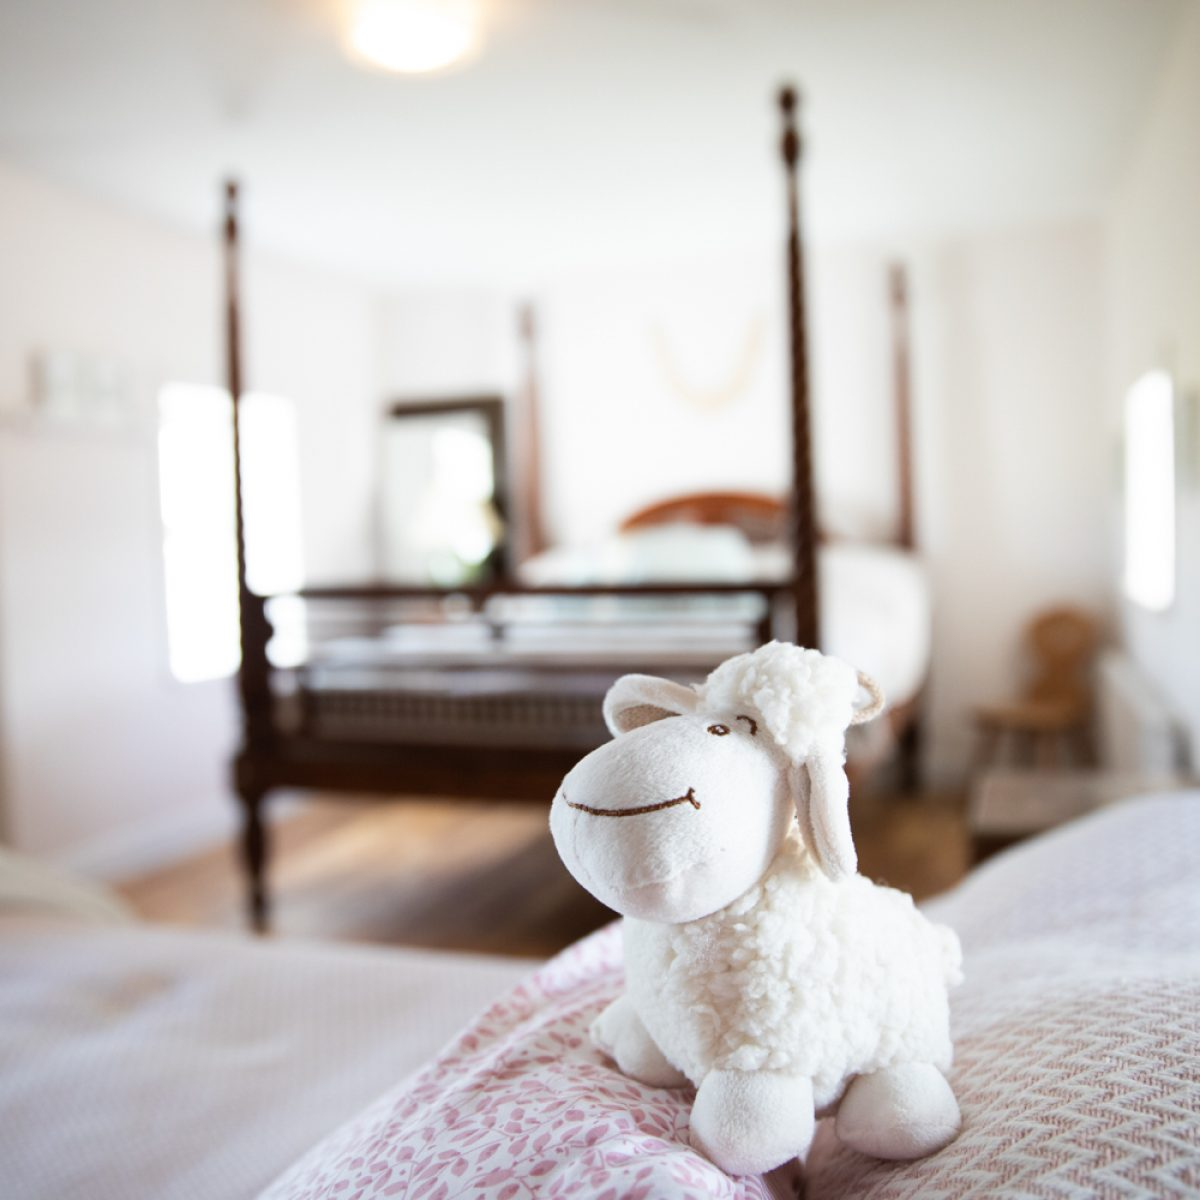 Newbrook House Mayo property photography interiors photography of soft toy sheep with four poster bed in background . Image by Sean Flynn, The Commercial Photographer